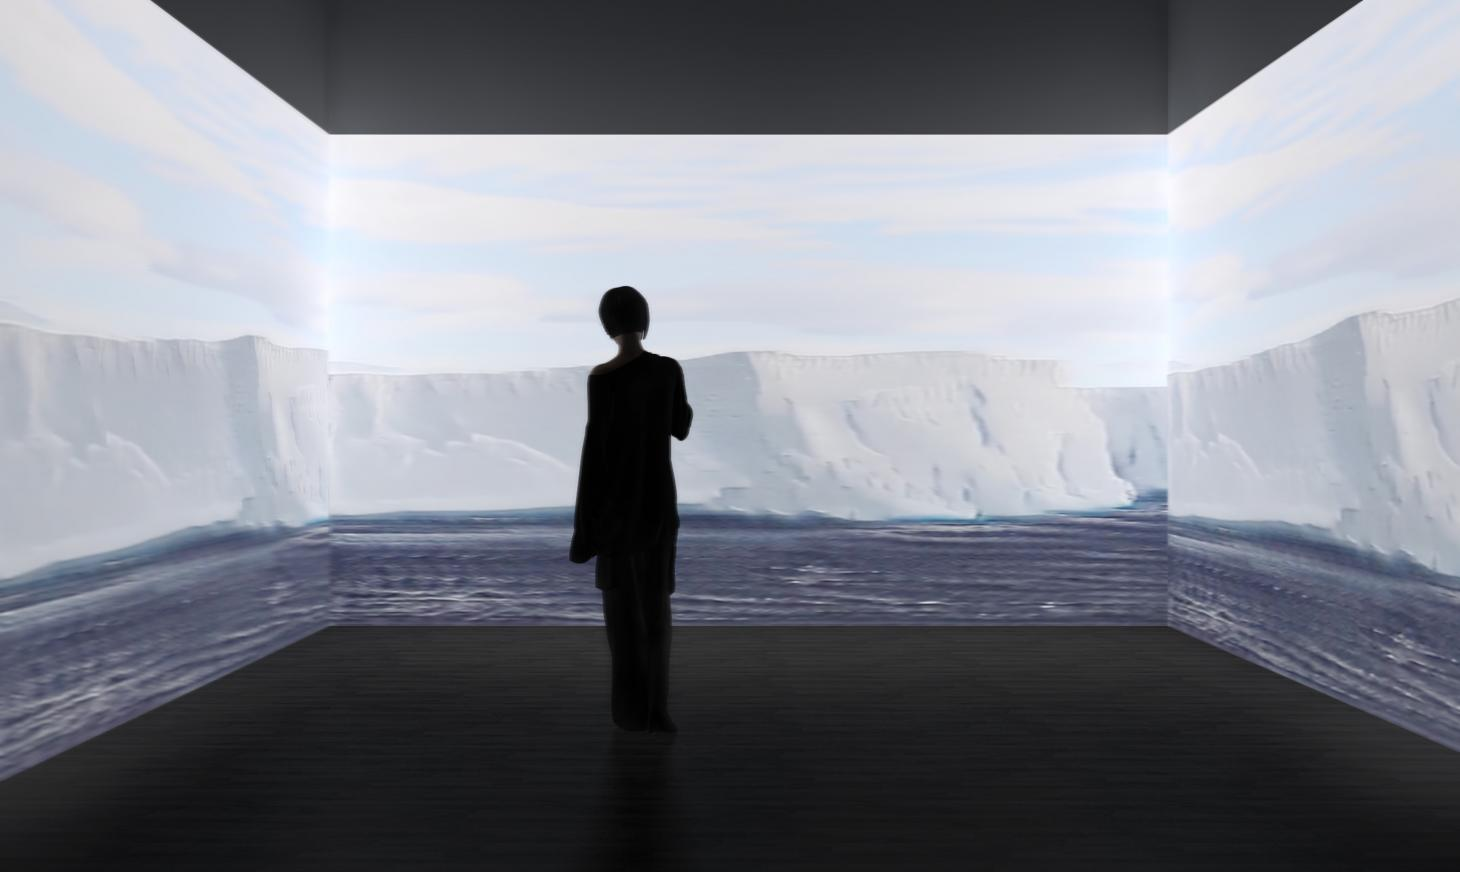 A visitors watches three screens with projection of ice landscape from Antarctica, part of the Antarctic pavilion at London Design Biennale